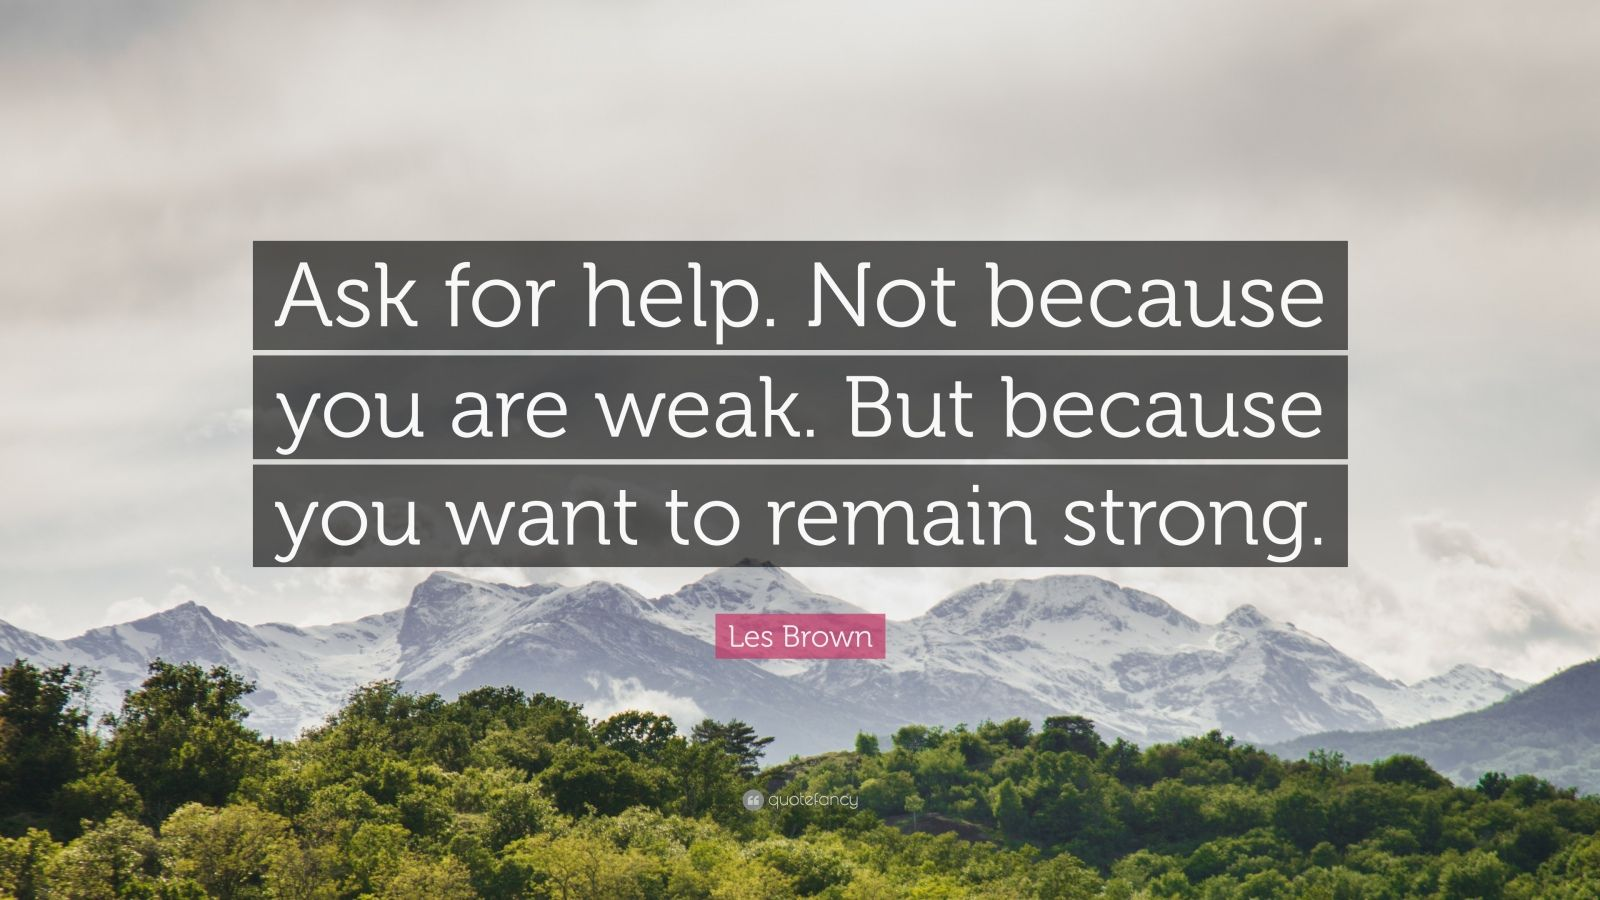 "Helping Quotes: ""Ask for help. Not because you are weak. But because you want to remain strong."" — Les Brown"